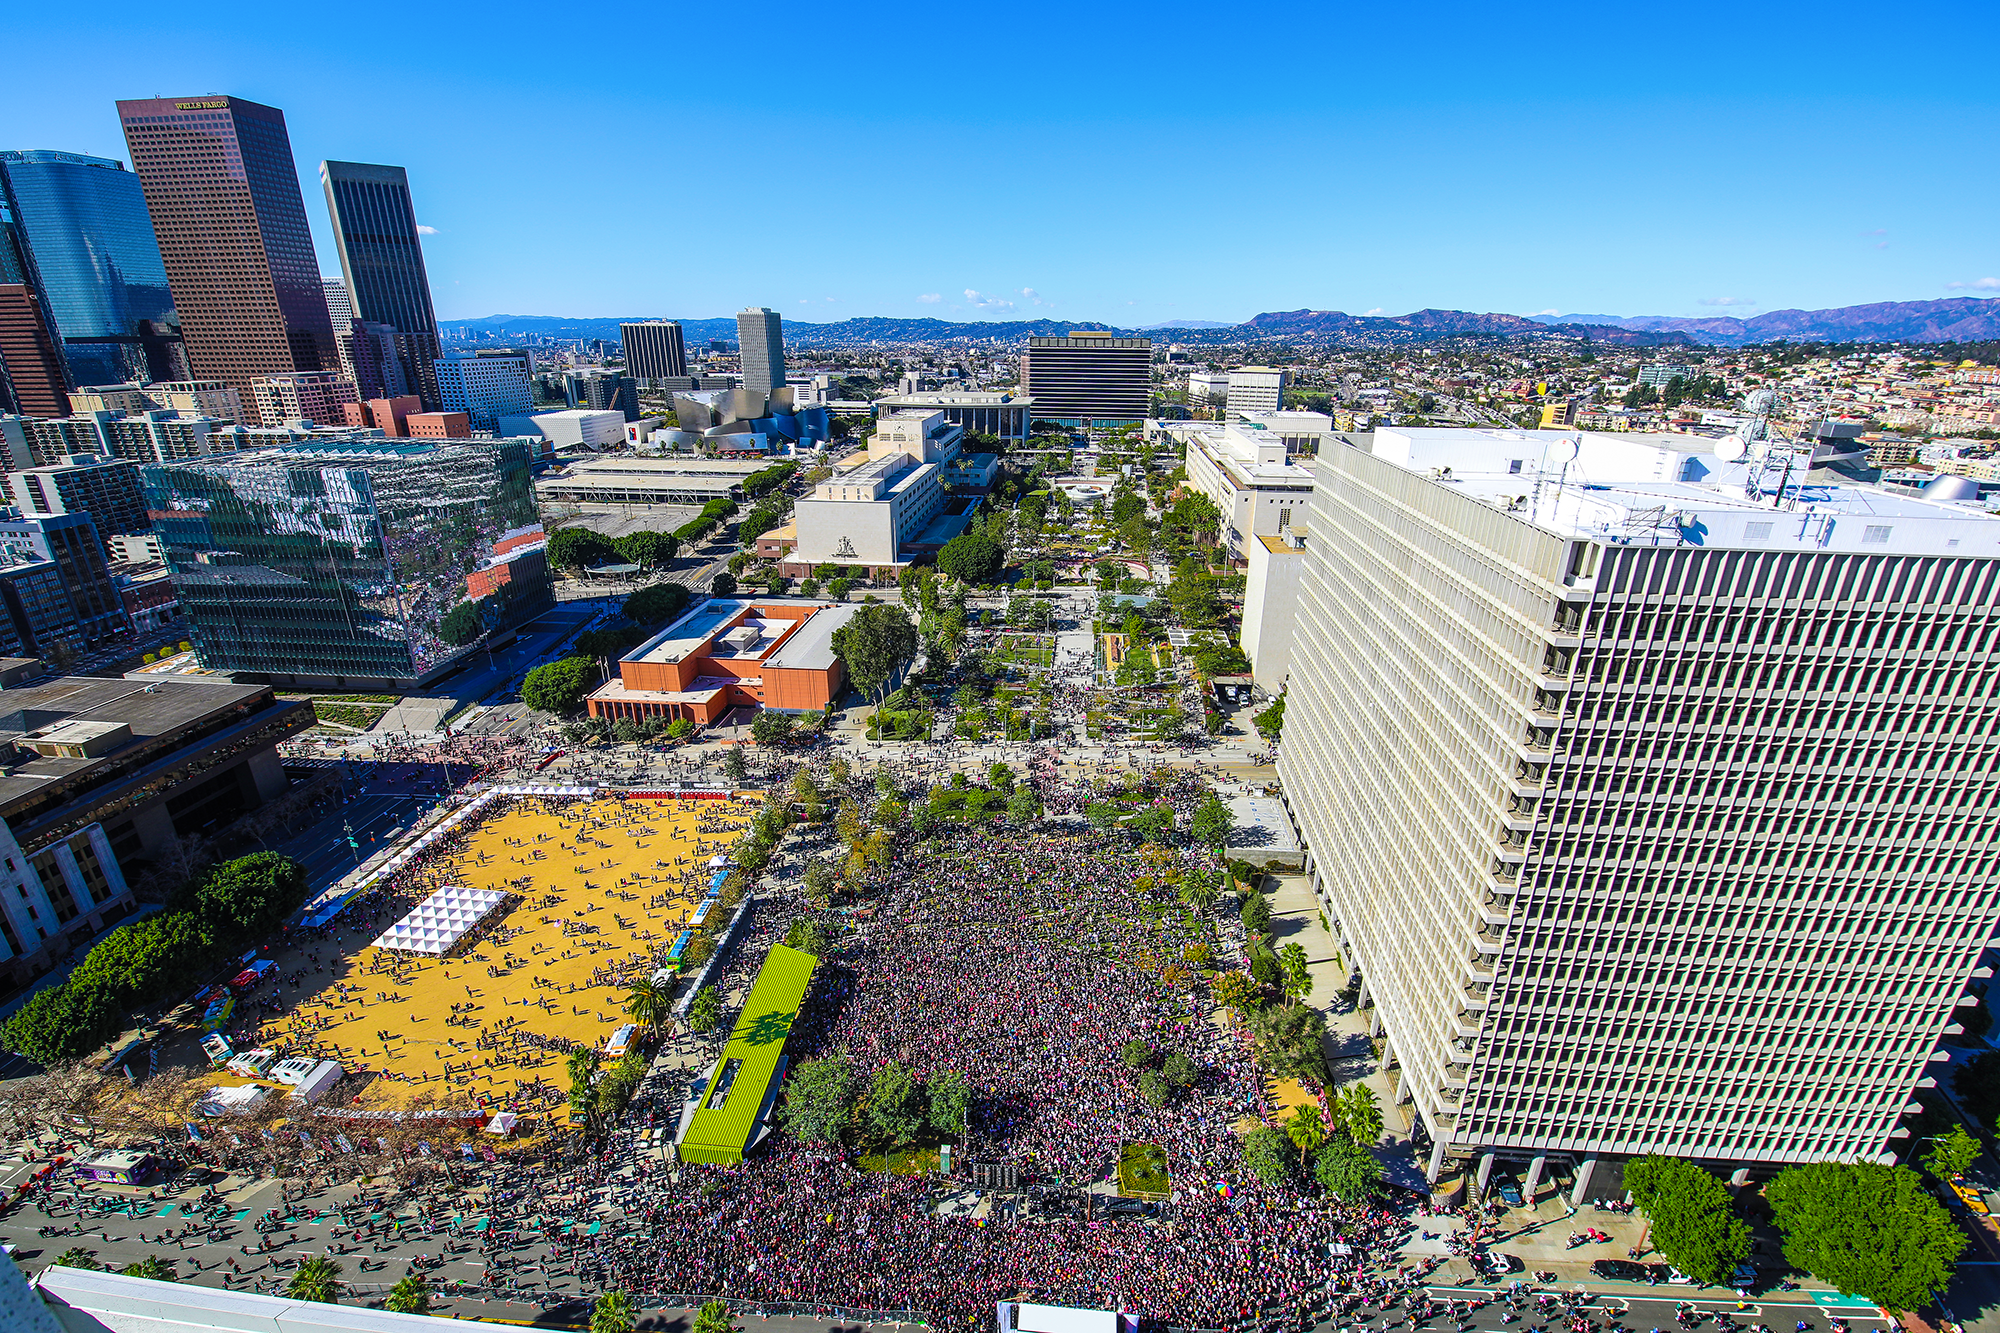 The RCH-designed Grand Park was the site of the 2018 Women's March in Los Angeles.